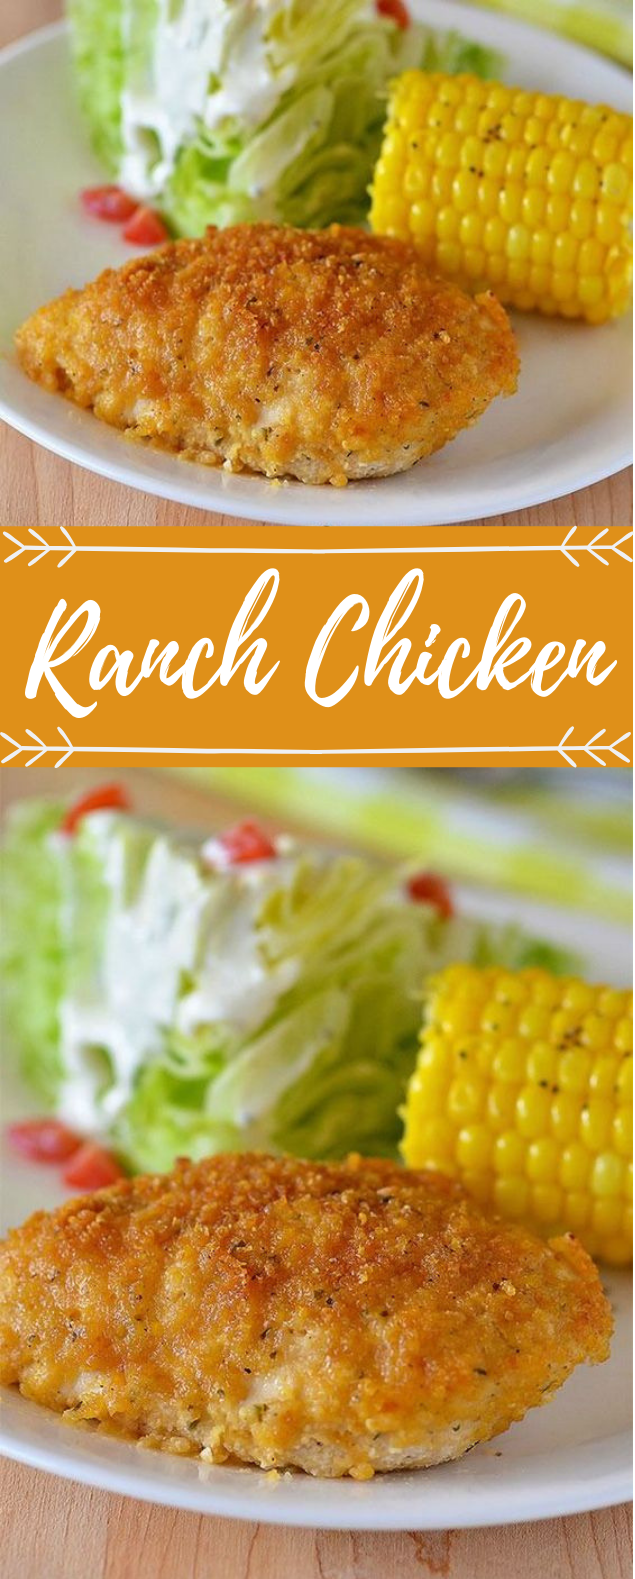 Ranch Chicken #dinner #familydinner